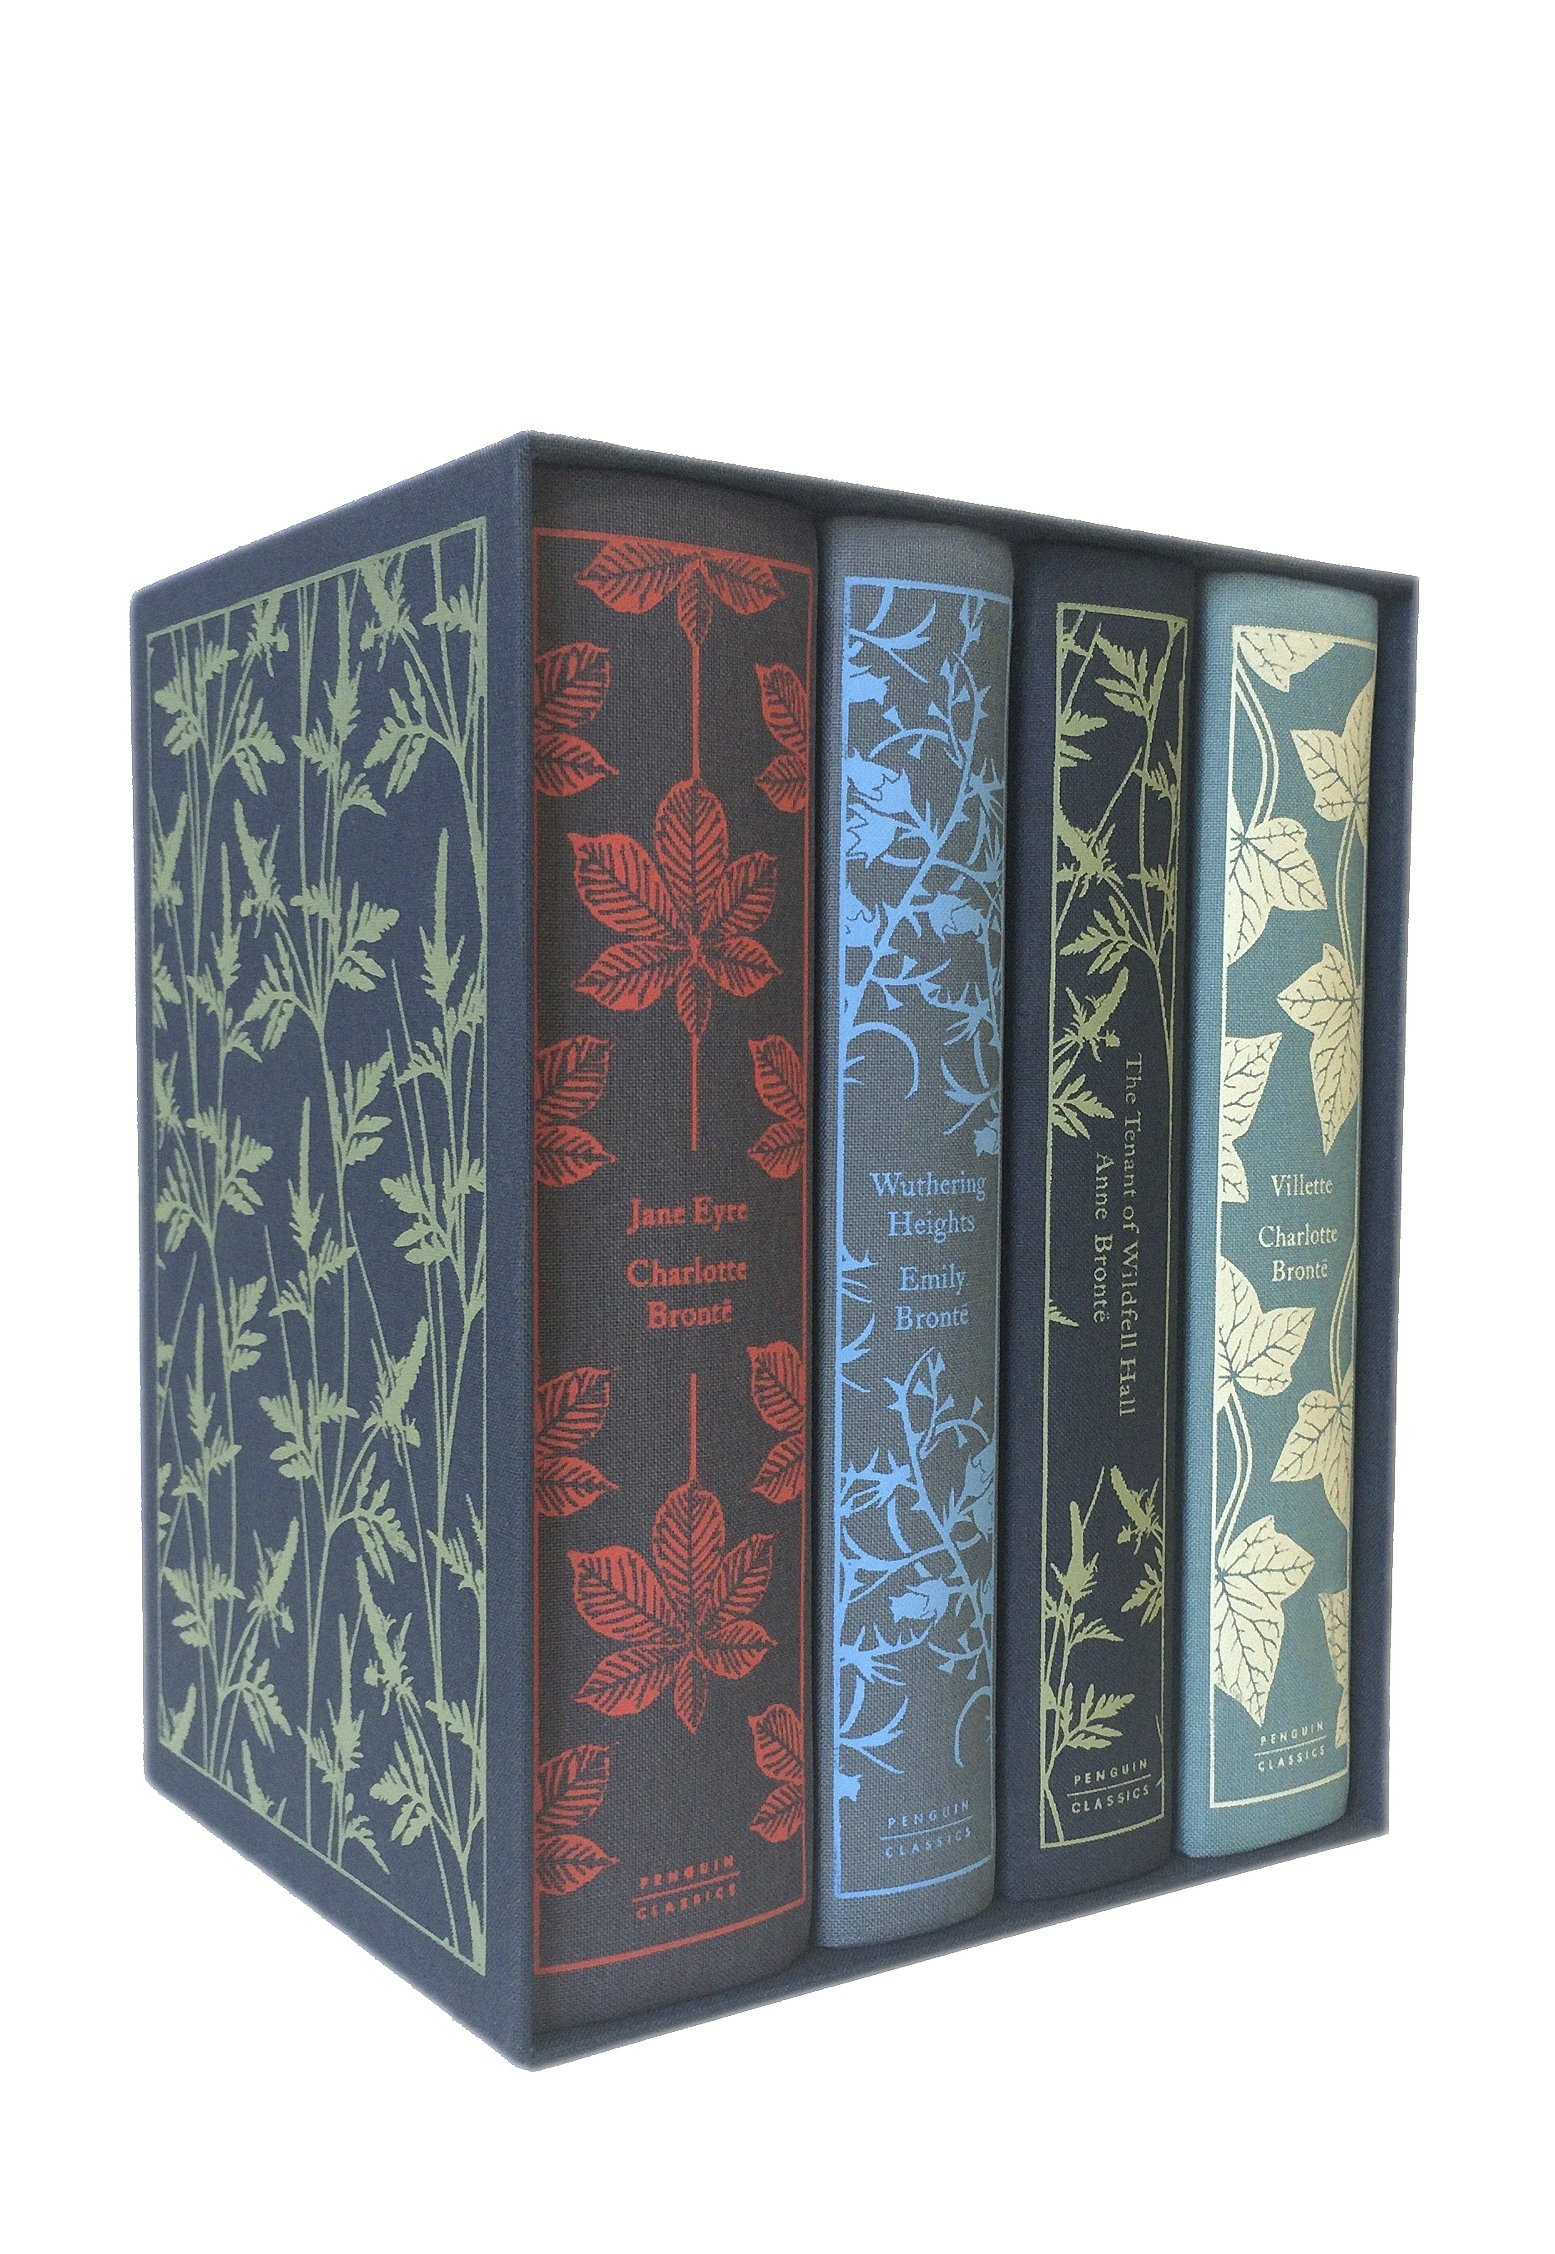 The Brontë Sisters Boxed Set: Jane Eyre, Wuthering Heights, The Tenant of Wildfell Hall, Villette (Penguin Clothbound Classics) by imusti